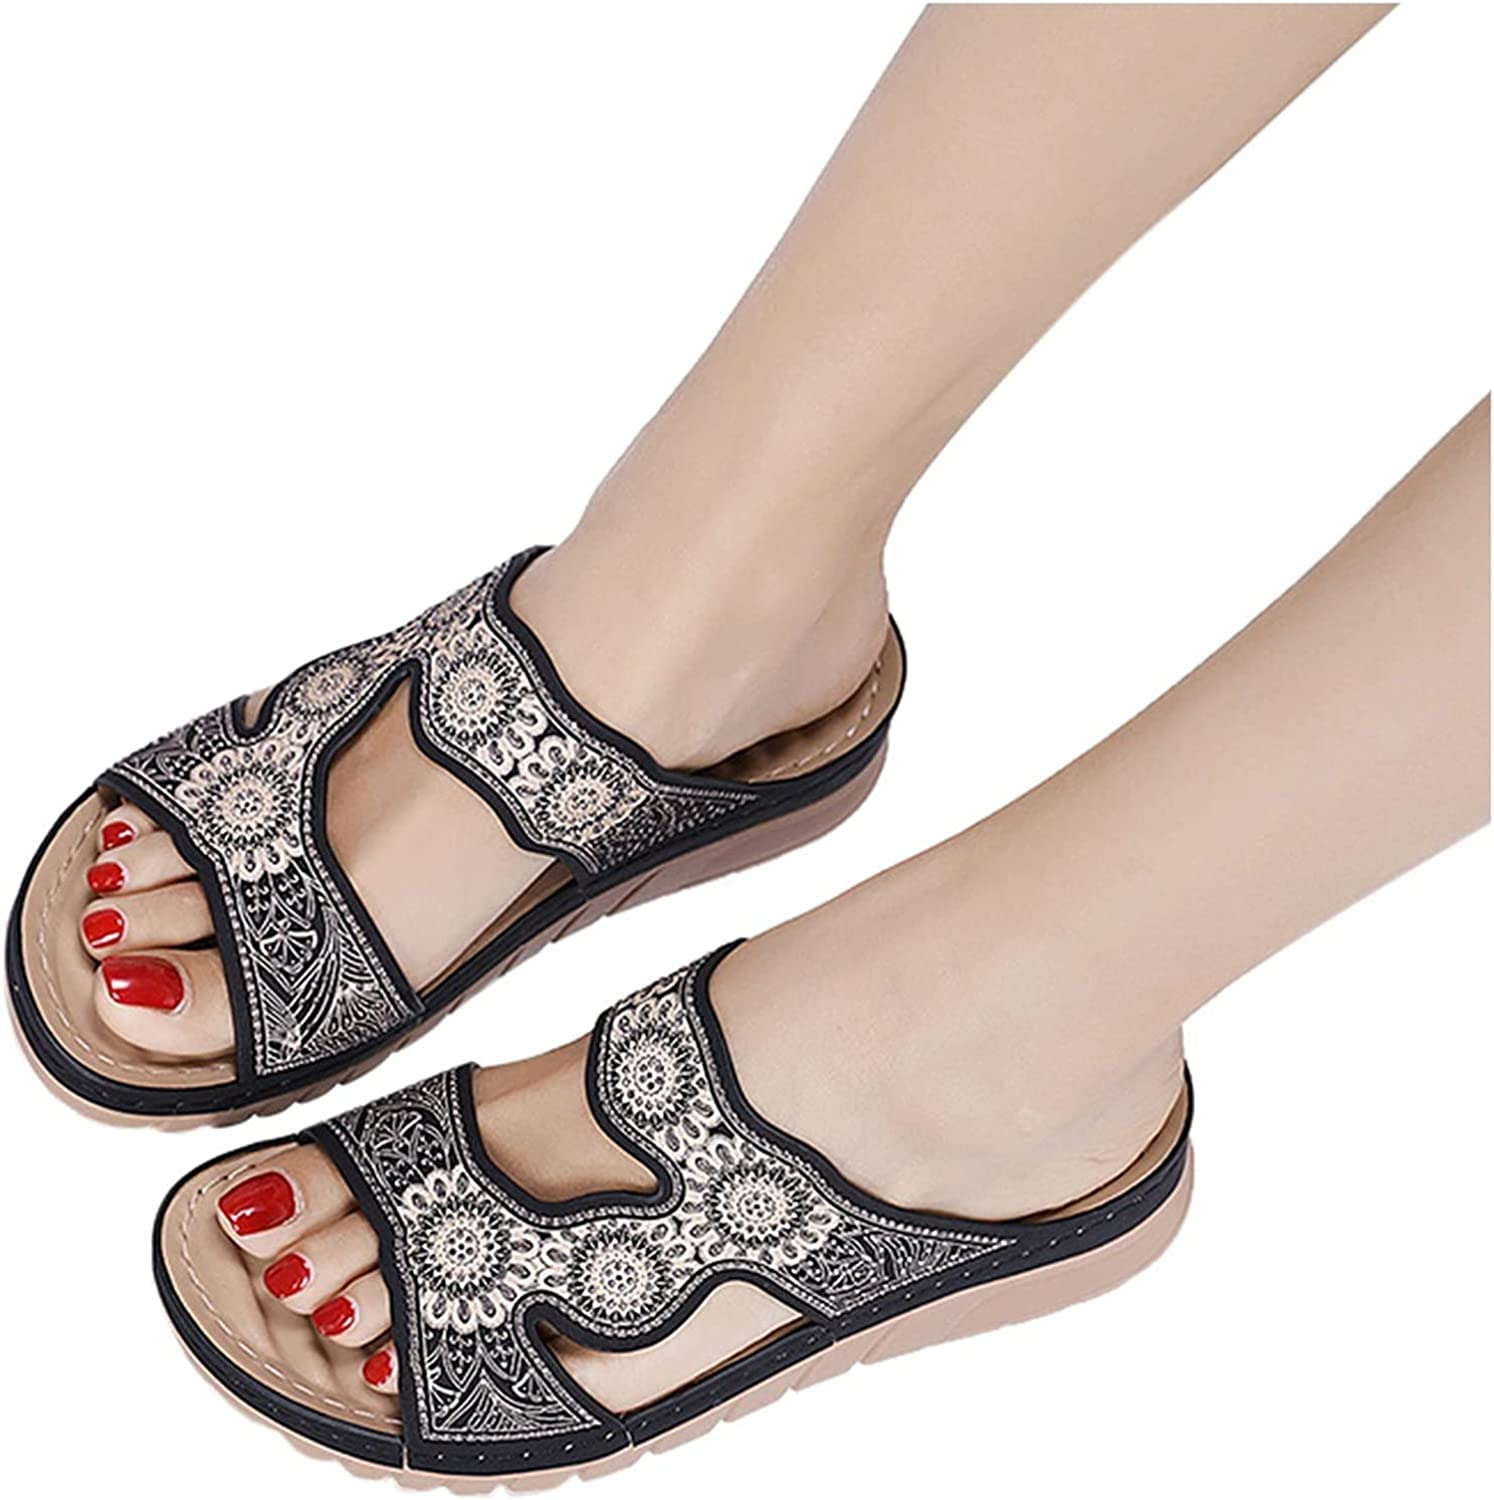 Raleigh Mall RUOYUN Women's Slippers Flat Root Embro Straps Online limited product Toe Open